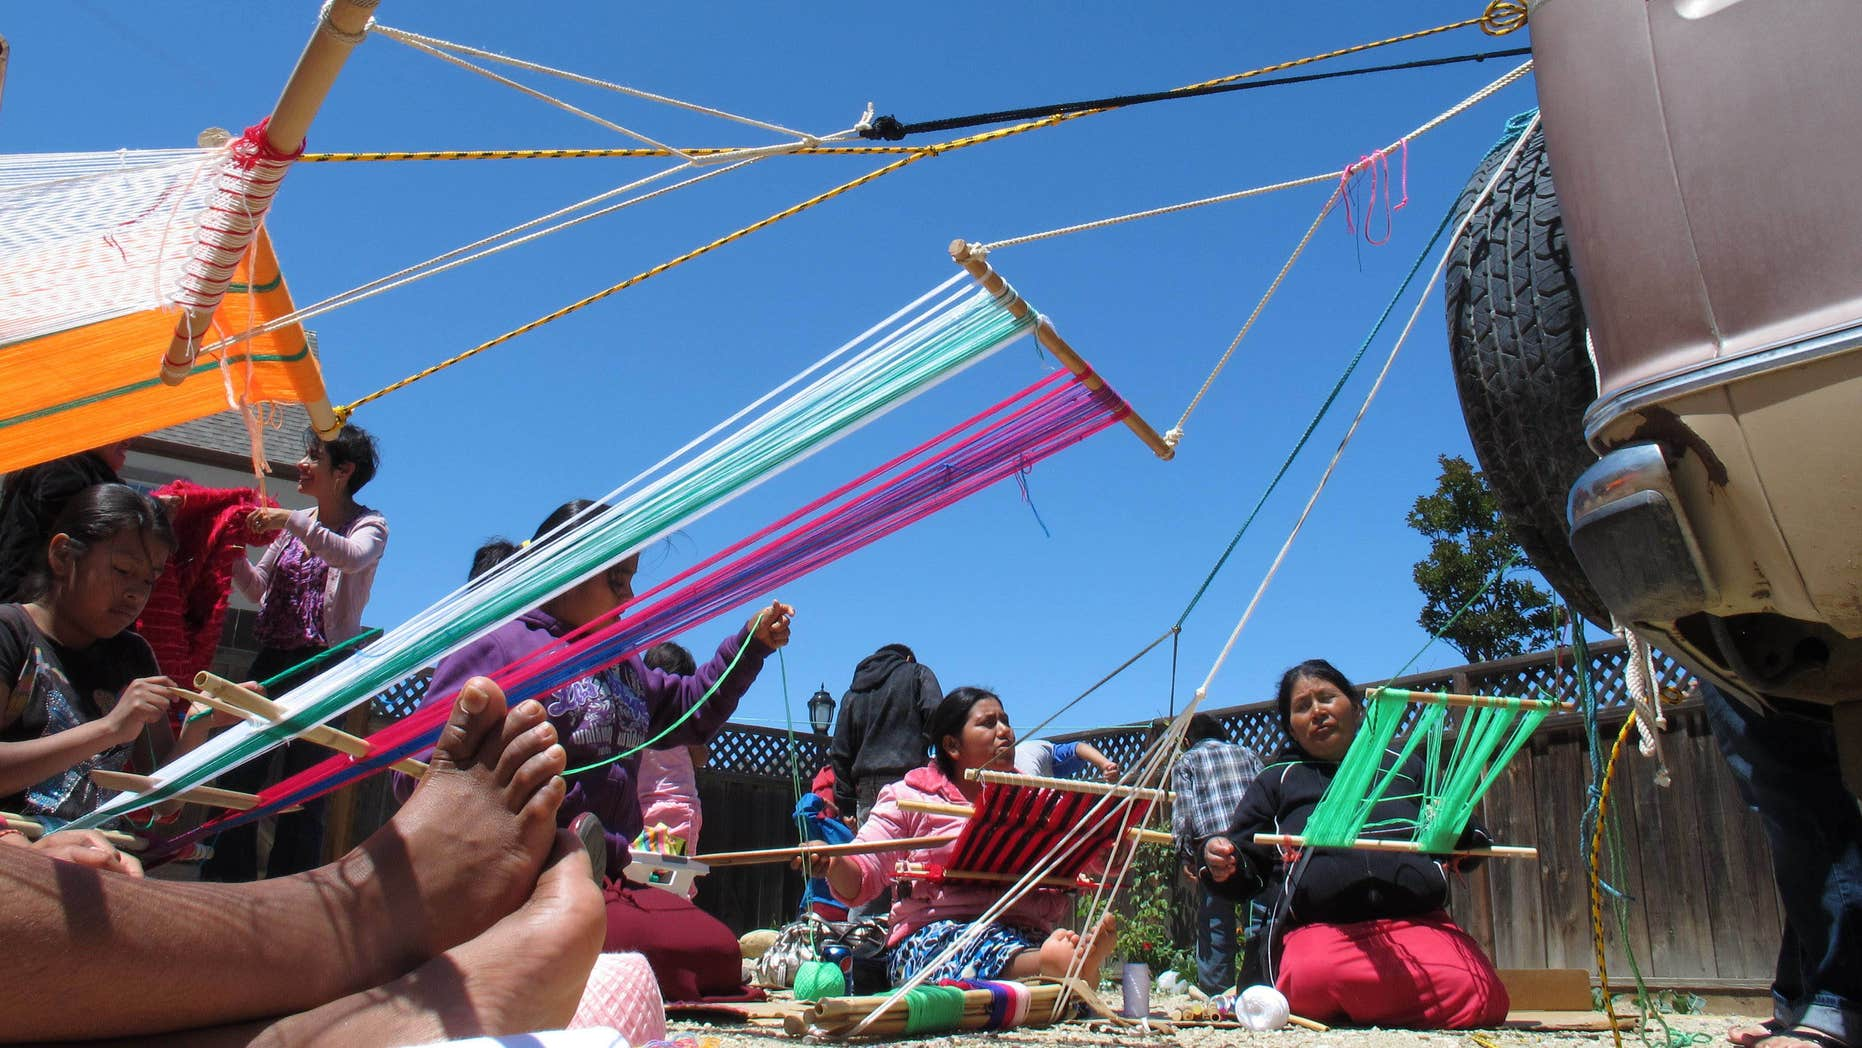 May 29: A group of women from the Mexican state of Oaxaca gather at a weaving workshop in Greenfield, California. Thousands of Trique, Mixtec and other Indians, the indigenous people of Mexico, have streamed in recent years from small mountain villages to Greenfield to plant and pick crops. Nearly all of Greenfield's 16,300 people are Latino - and yet an ugly conflict has been brewing between longer-time residents and newcomers.